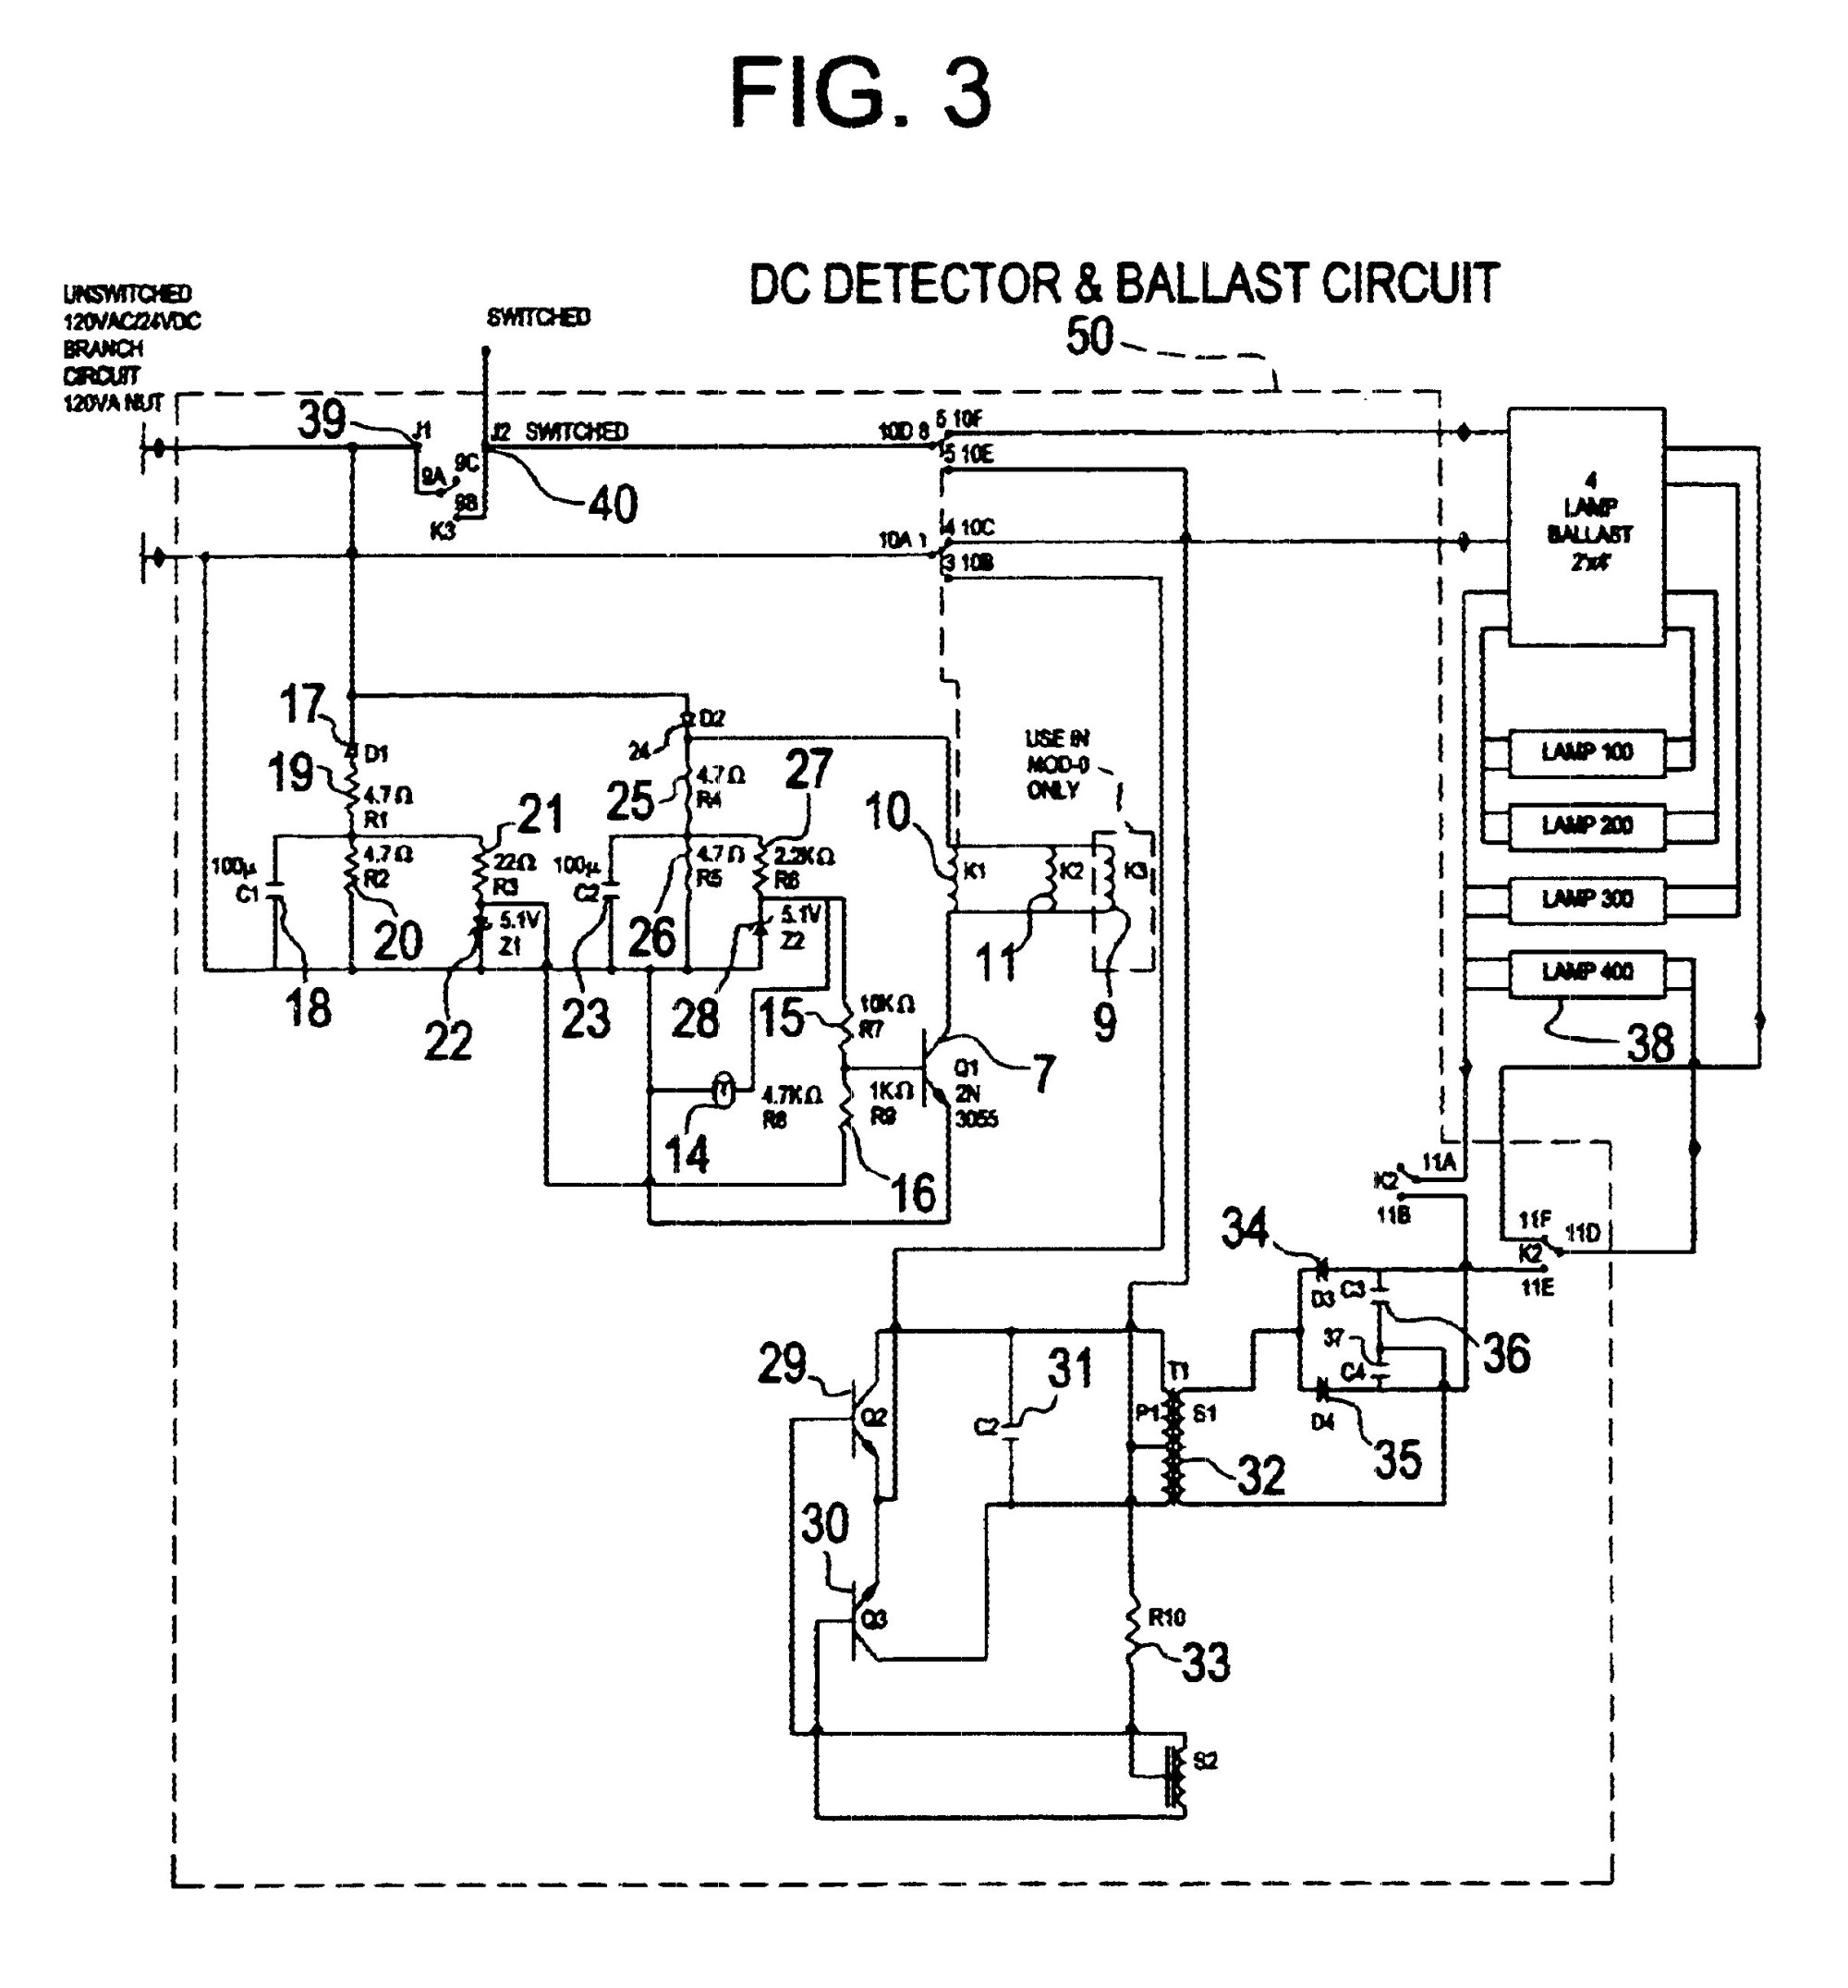 hight resolution of battery ballast wiring diagram wiring diagram m6 bodine emergency ballast wiring diagram